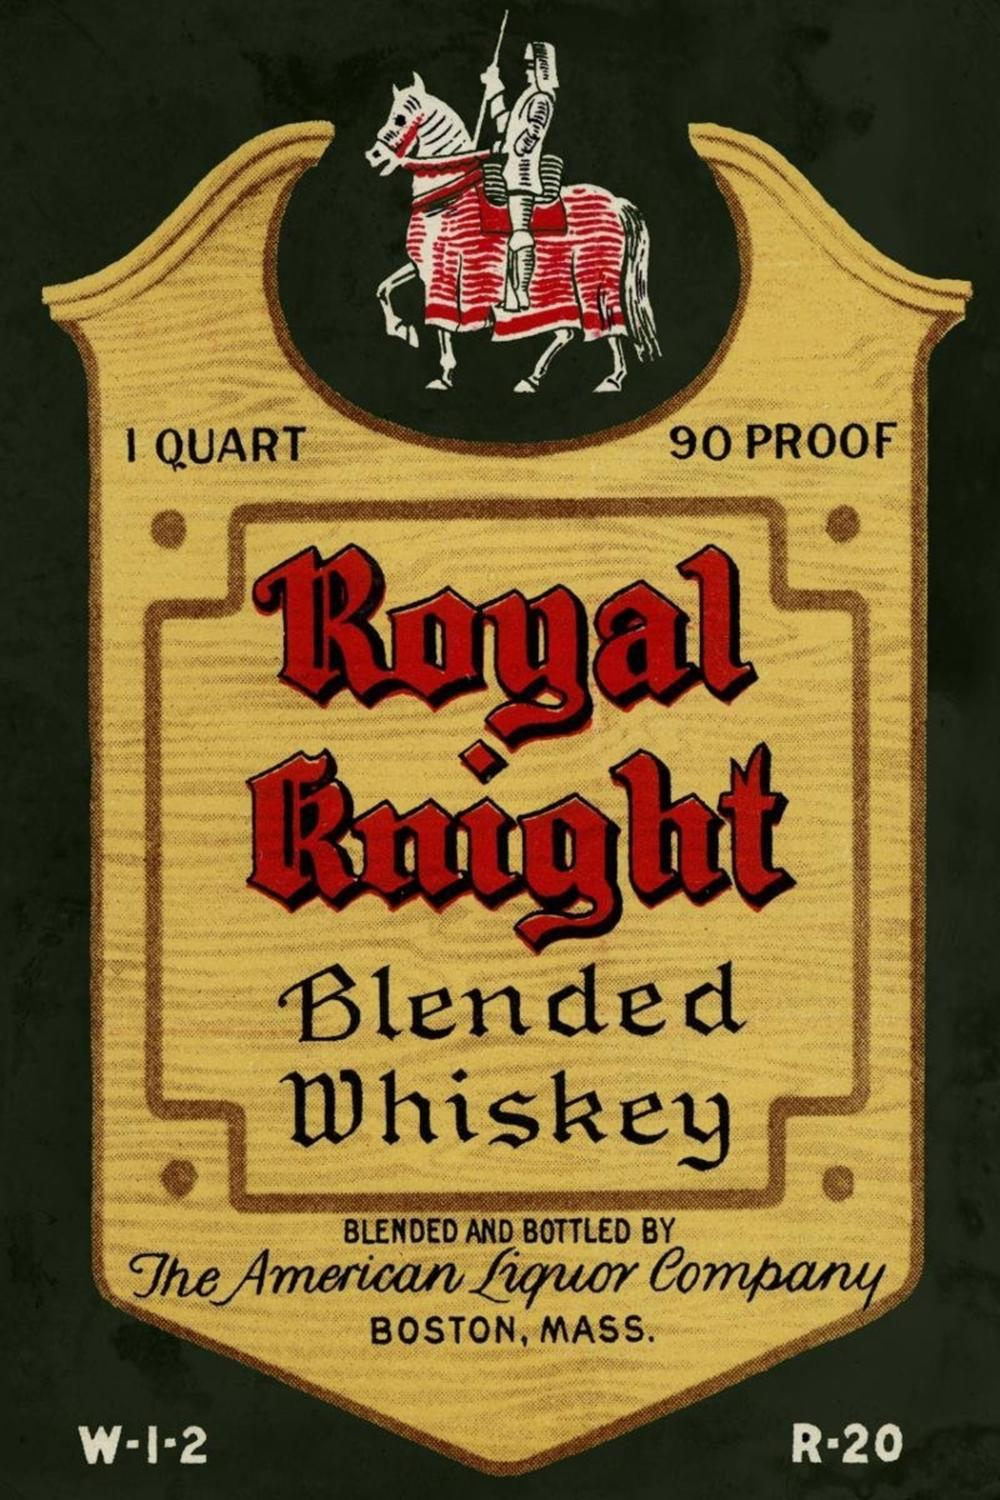 VINTAGE BOOZE LABELS ROYAL KNIGHT BLENDED WHISKEY